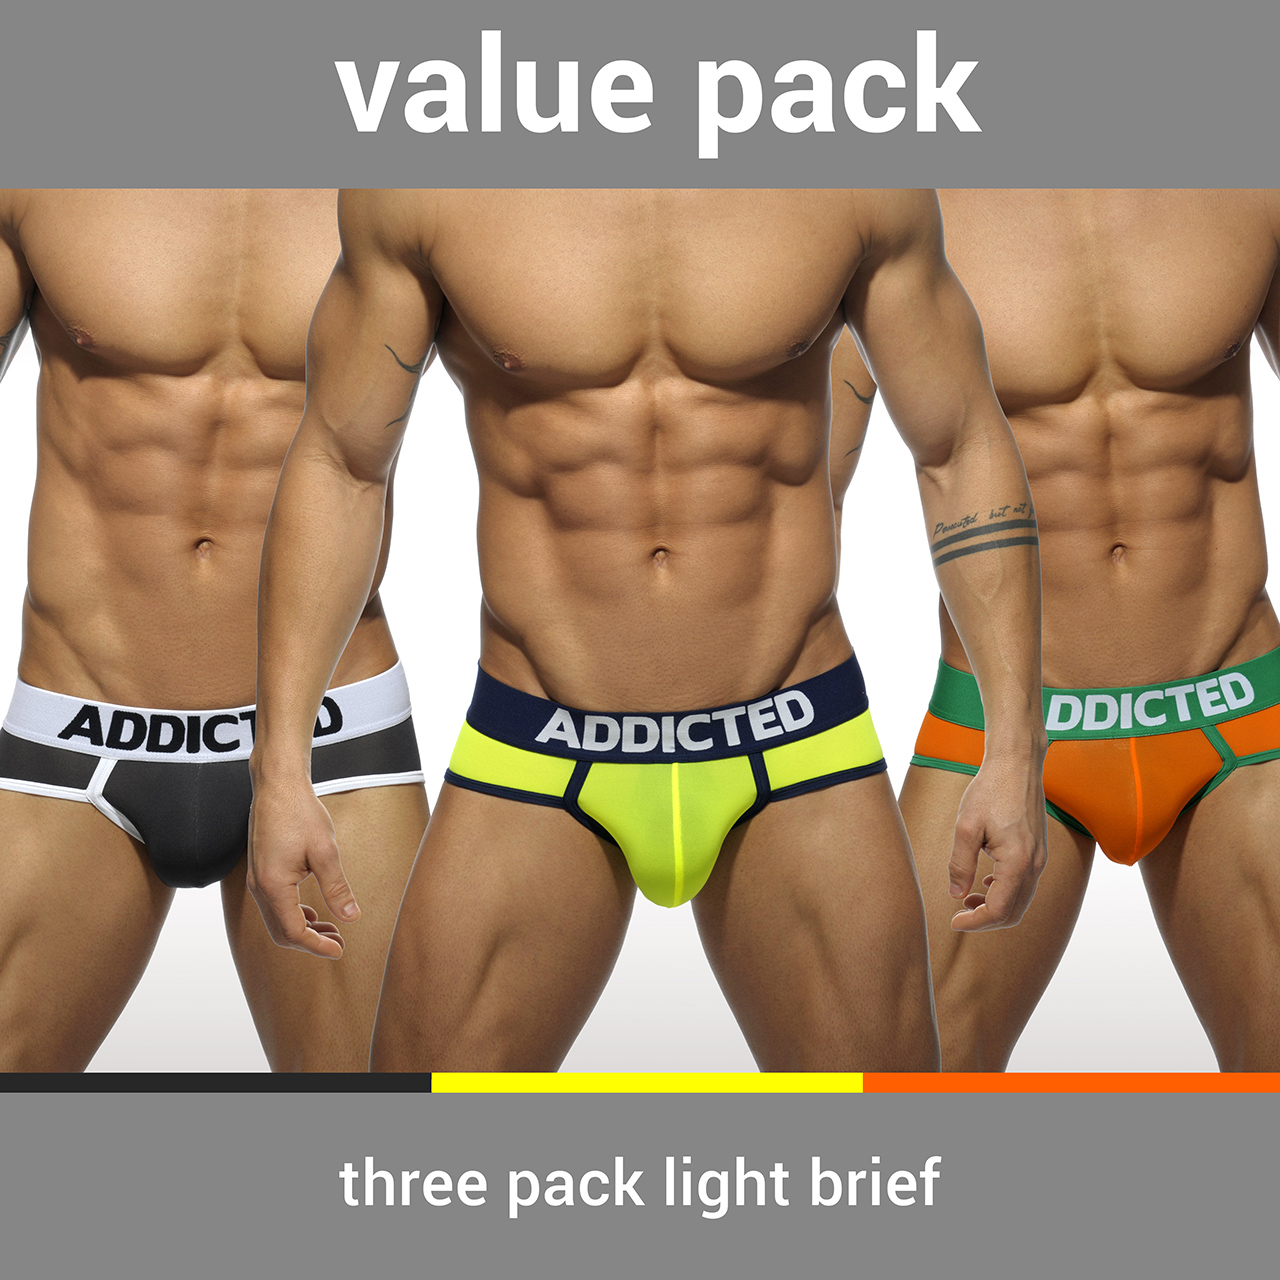 3 PACK LIGHT BRIEF 3 COLOURS